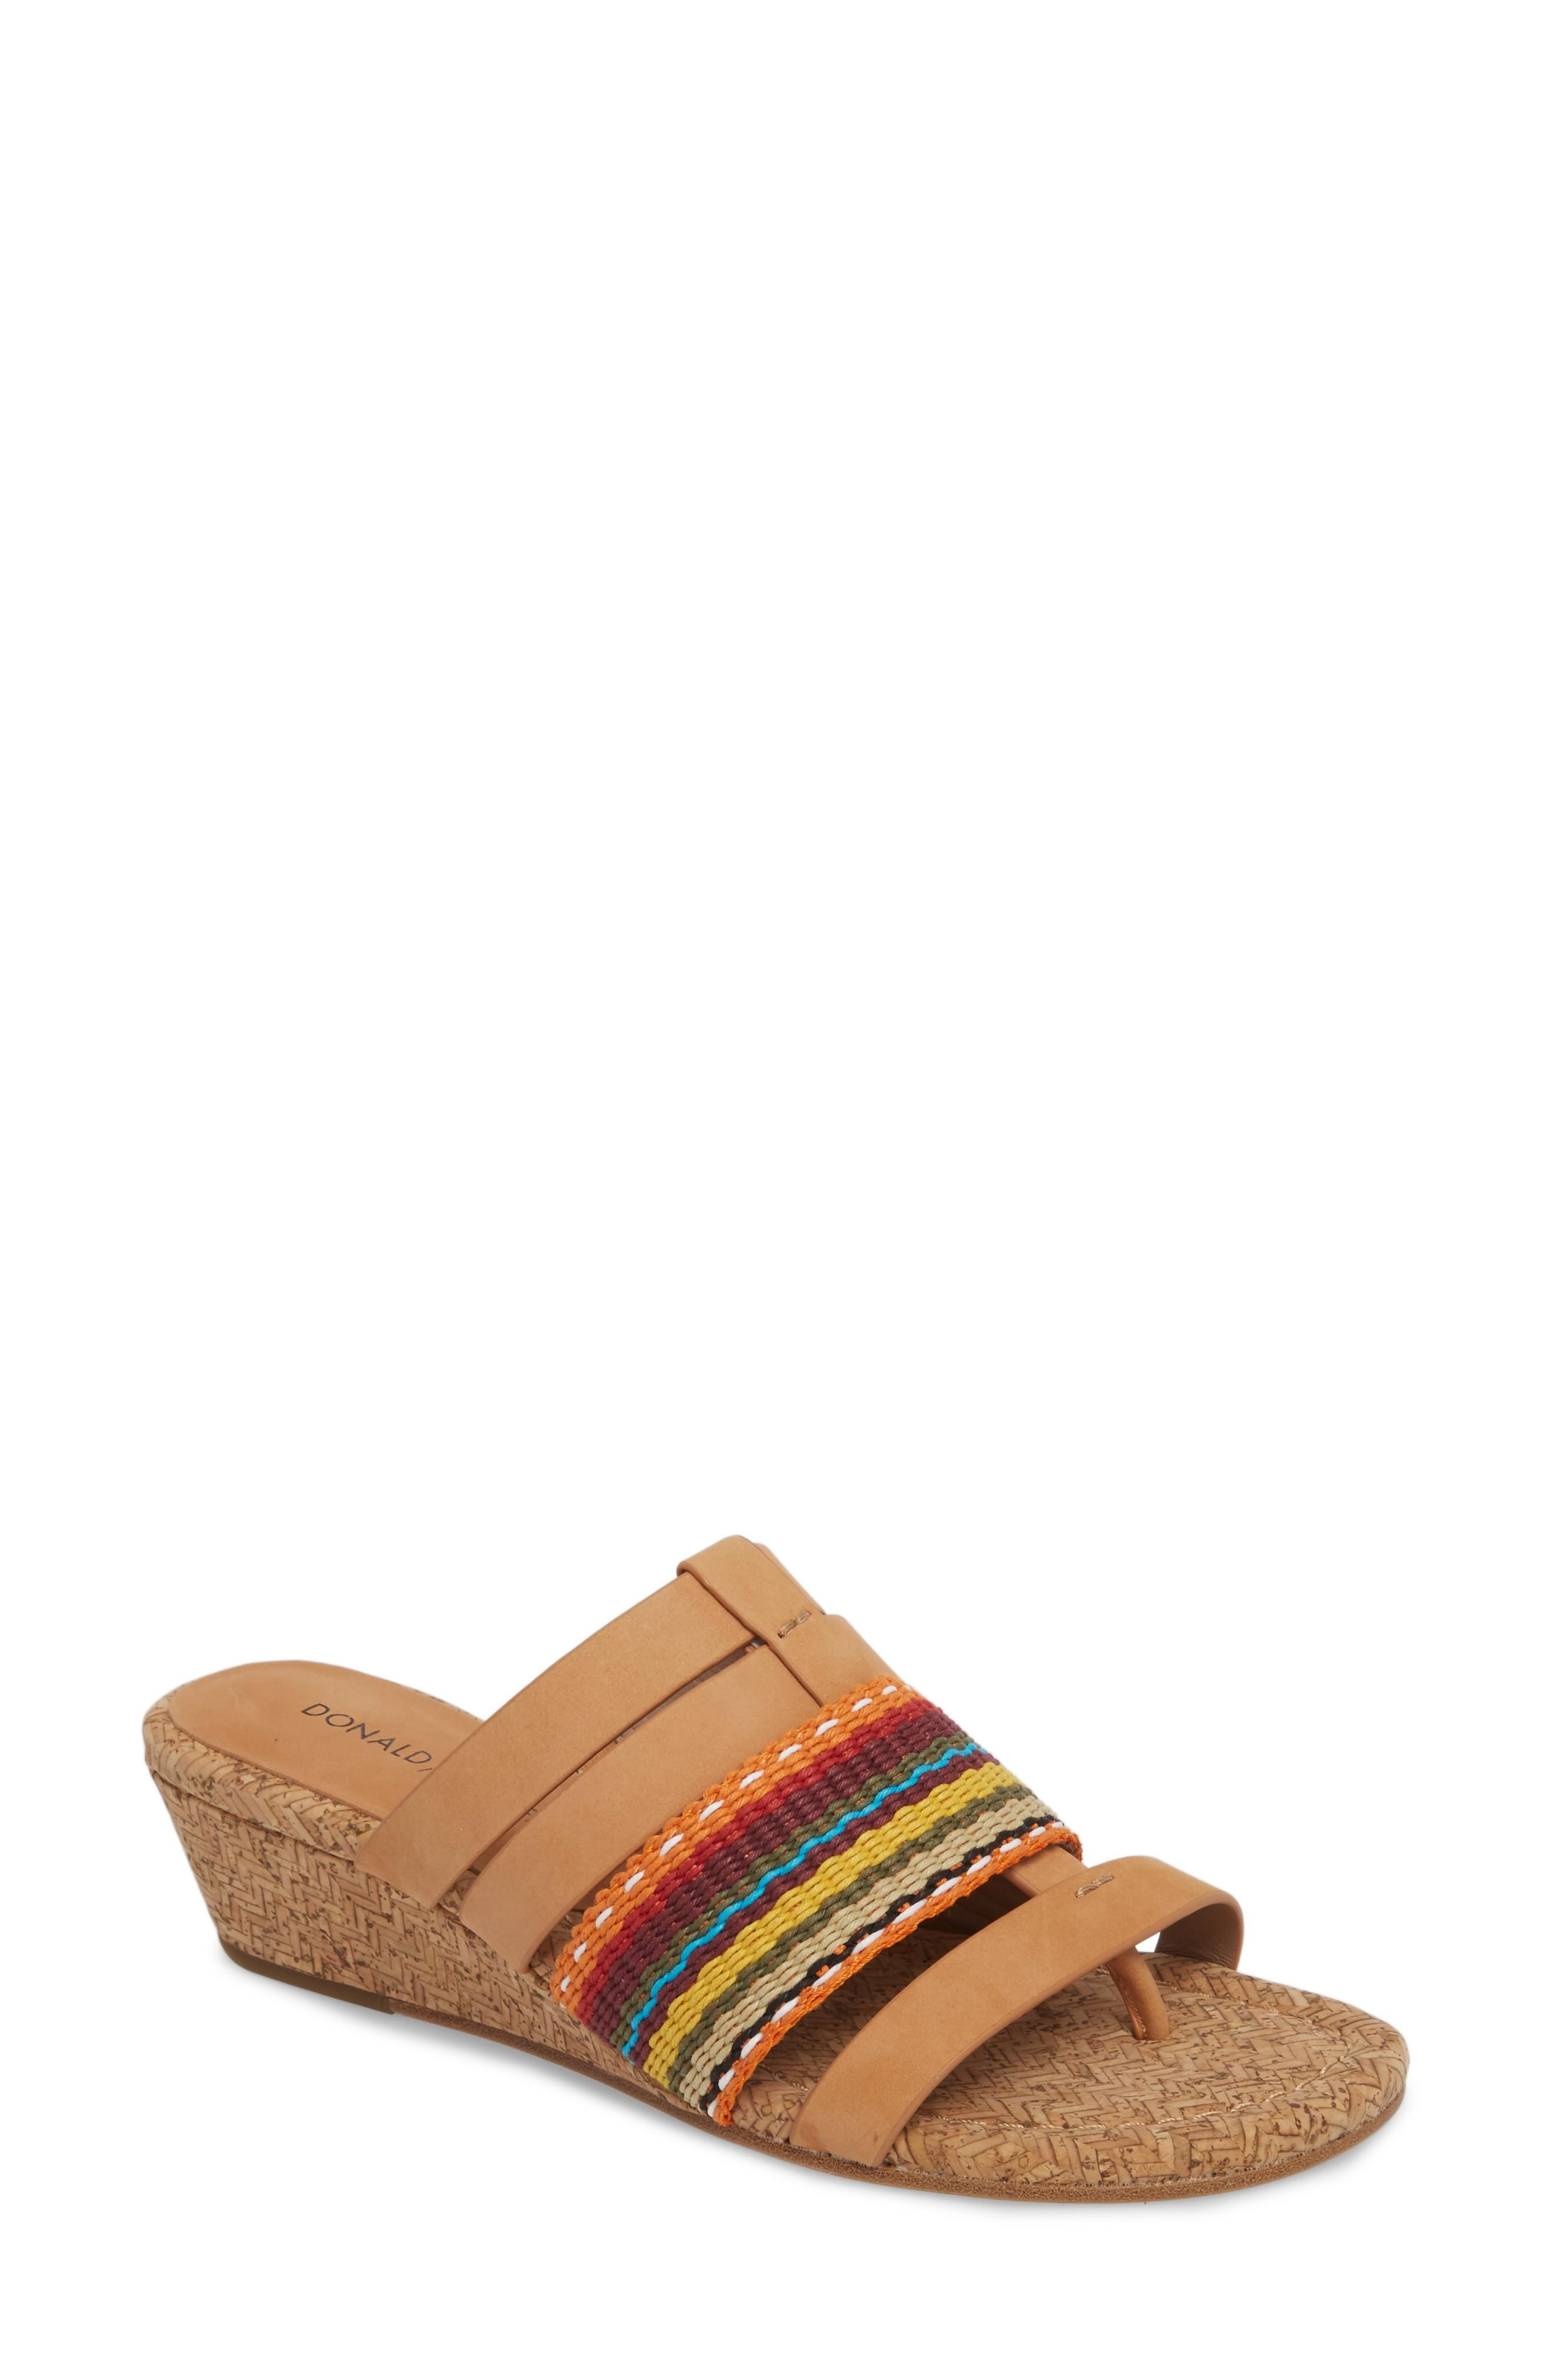 Donald Pliner Dara Wedge Sandal In Multi/ Fawn Leather